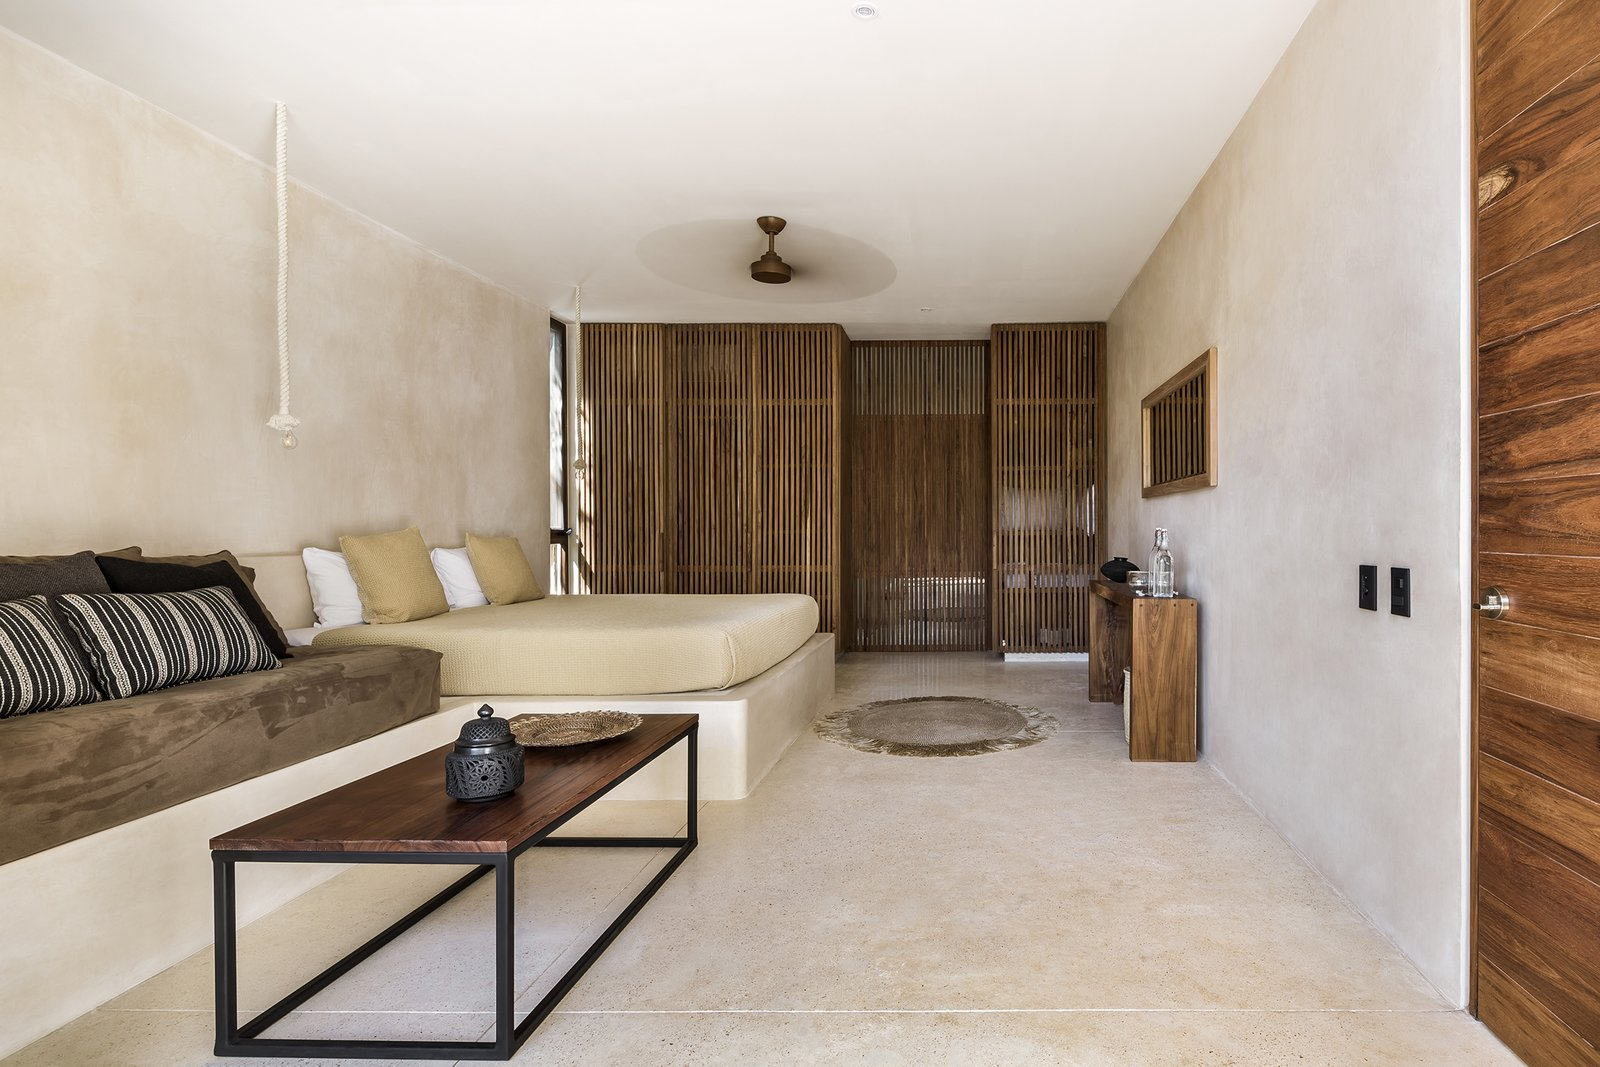 Bedroom, Concrete Floor, Bed, and Table Lighting  Photos from Jungle Keva